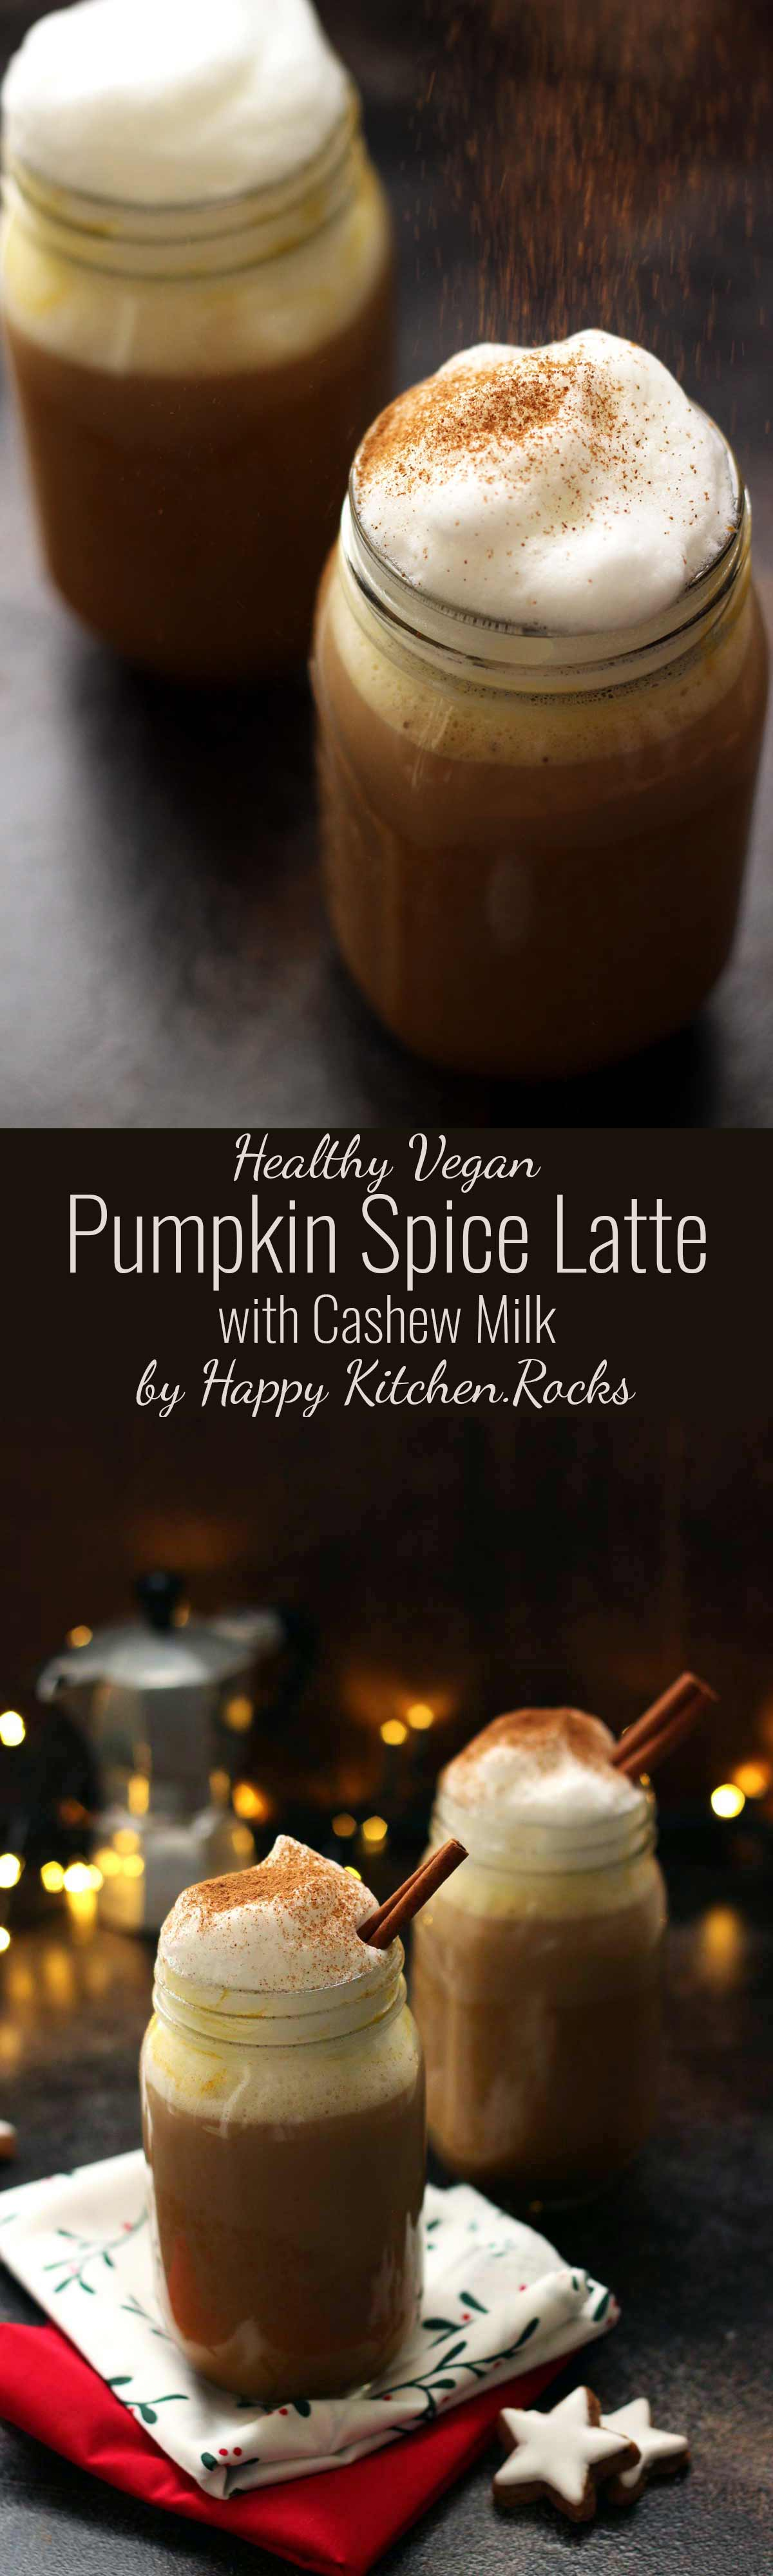 Healthy Vegan Pumpkin Spice Latte Collage of Two Recipe Images